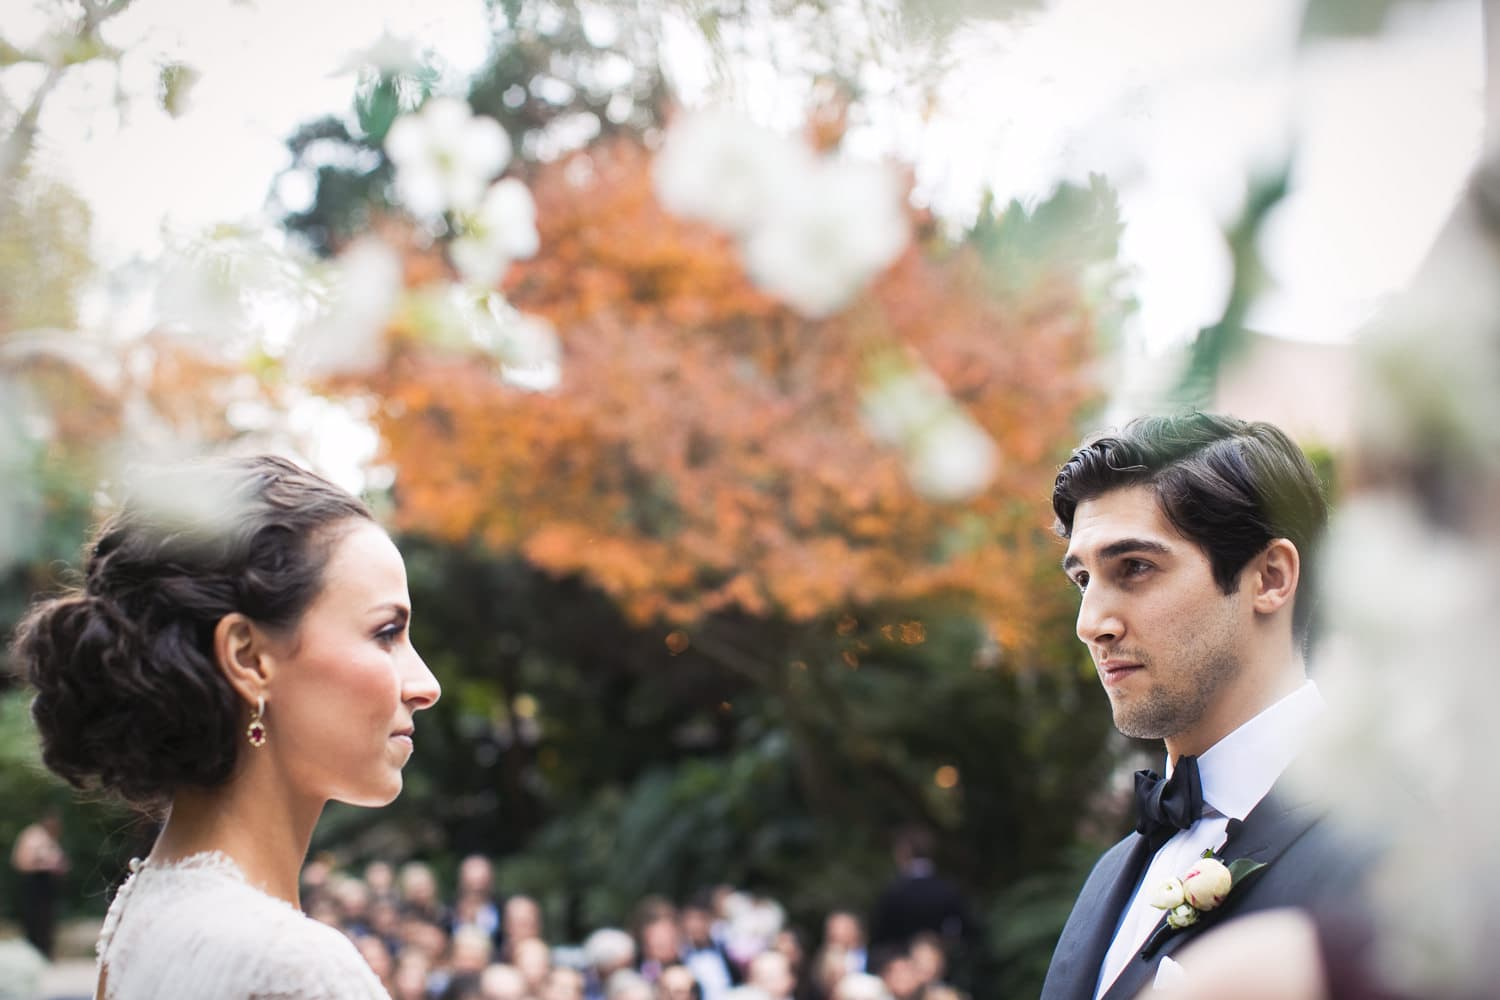 Fall Hotel Bel-Air wedding ceremony moment